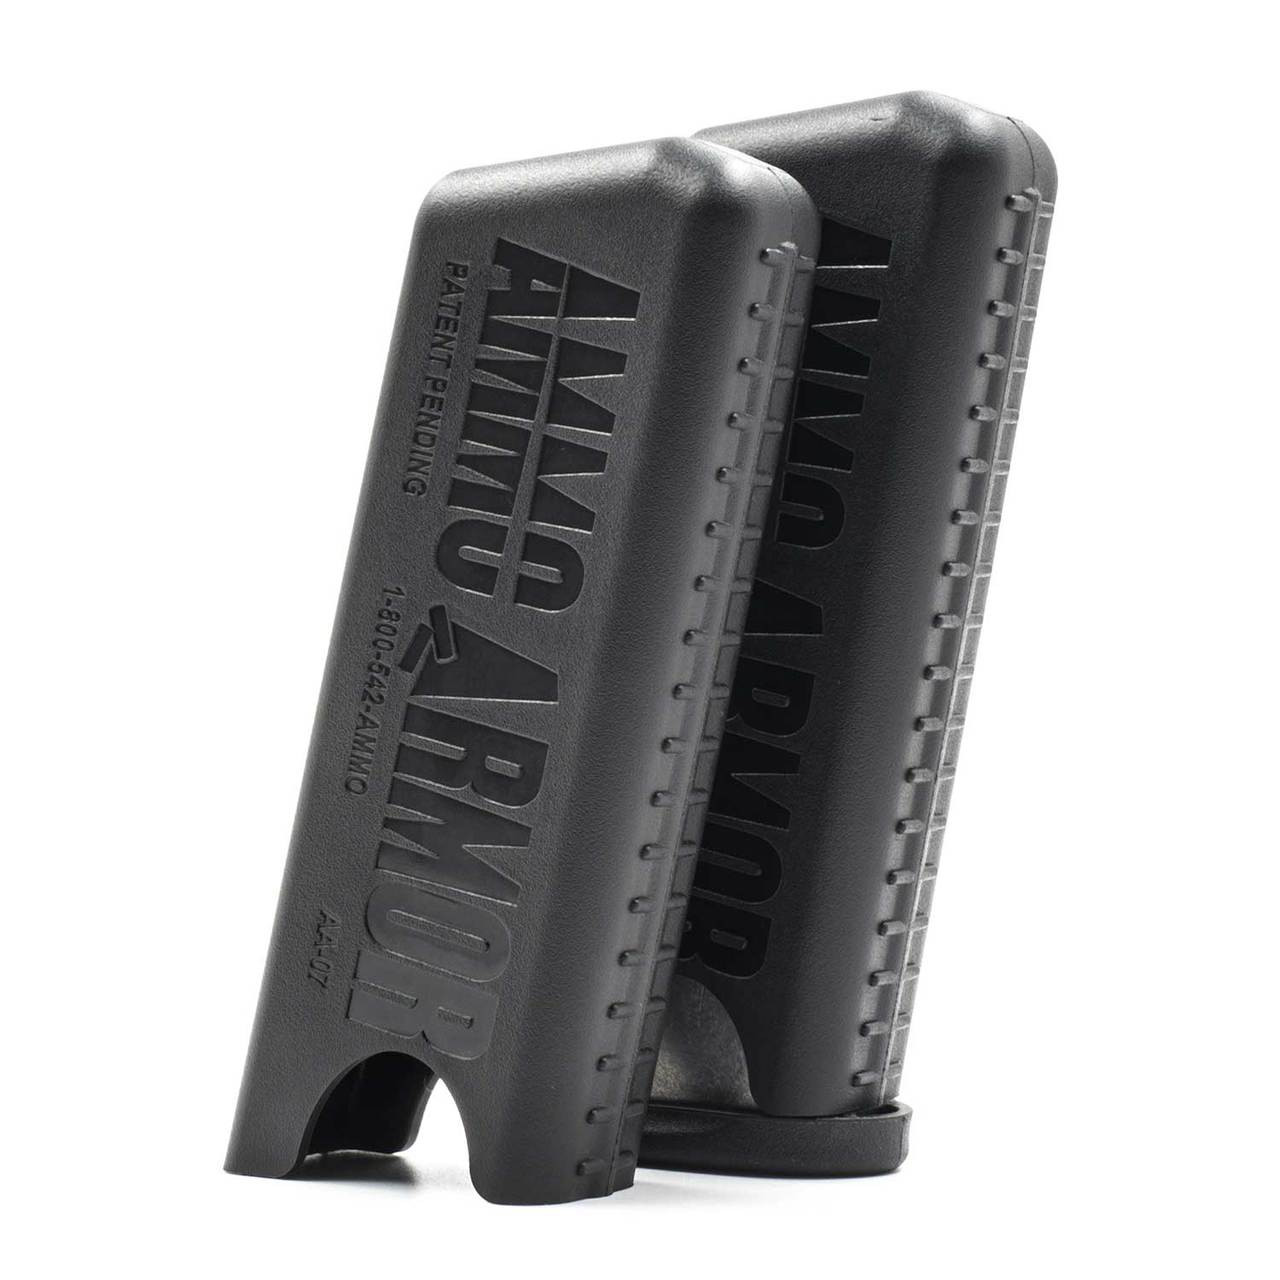 Smith & Wesson M&P Shield 9 Ammo Armor